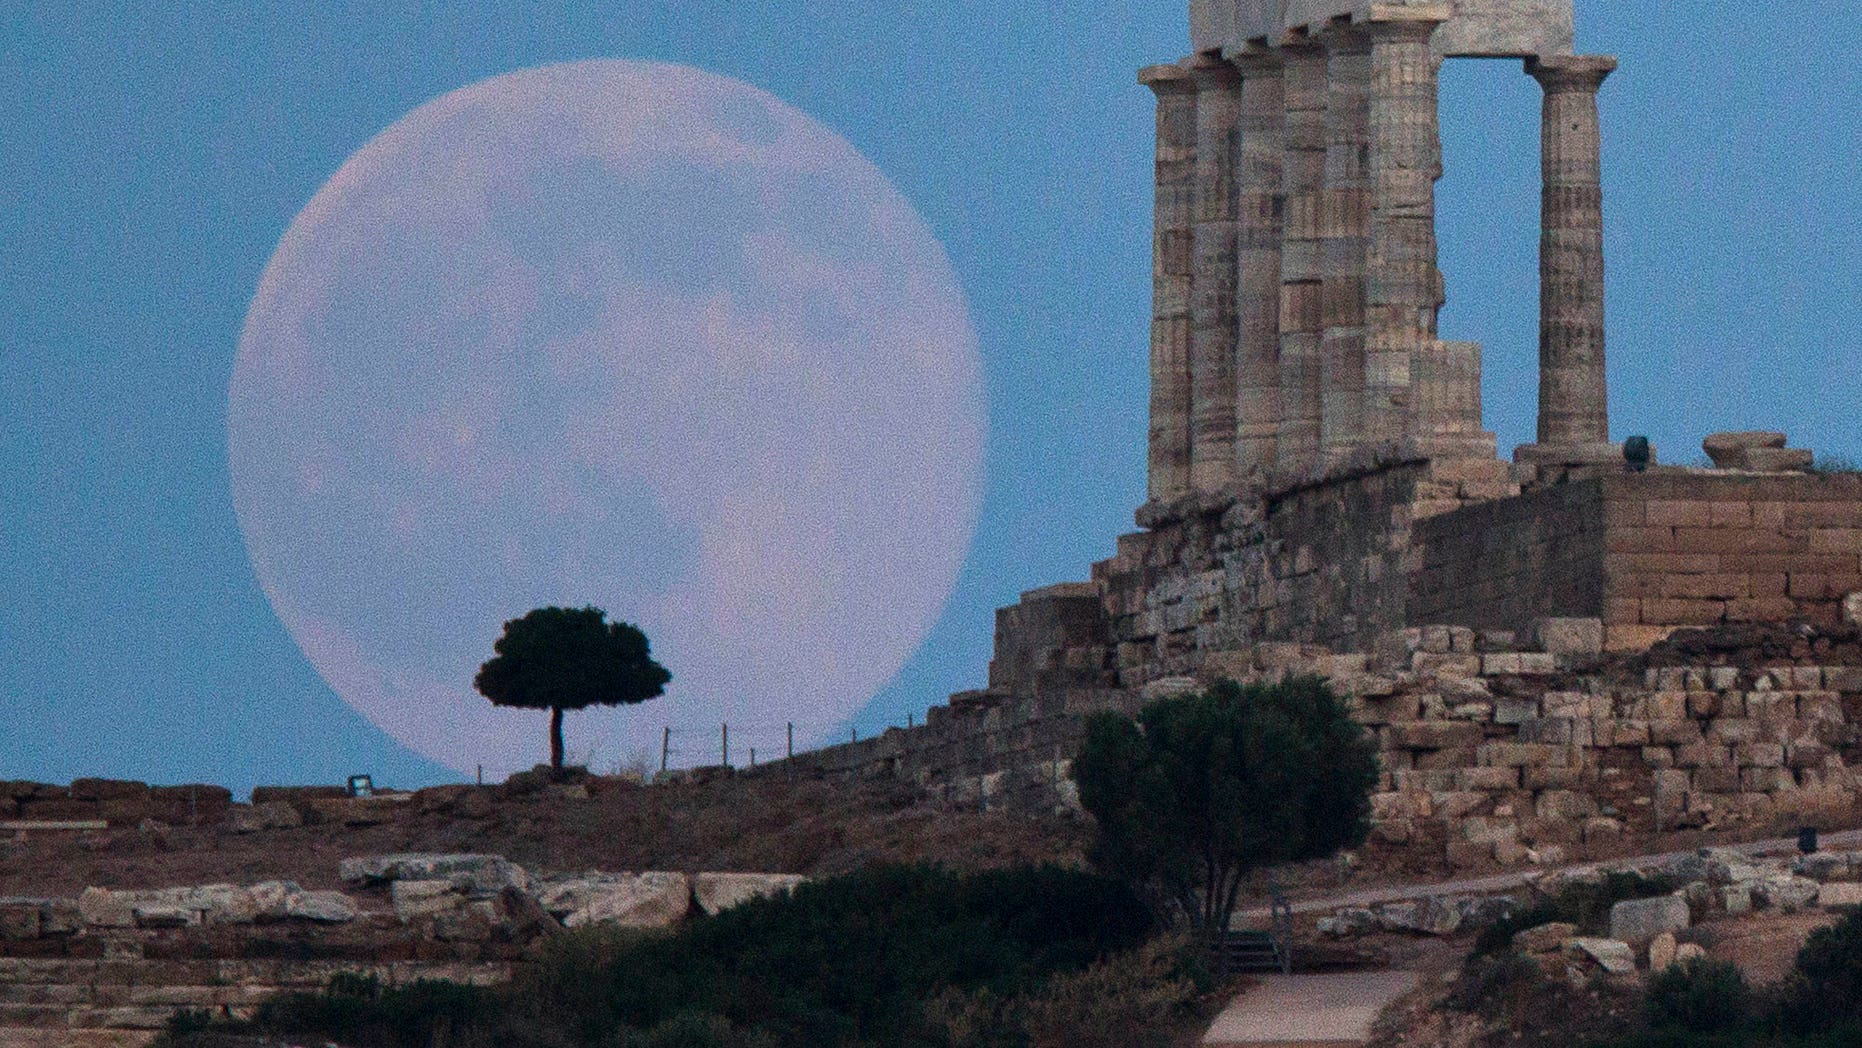 The full moon rises behind a tree next to the ruins of the ancient Temple of Poseidon near Athens, Greece.